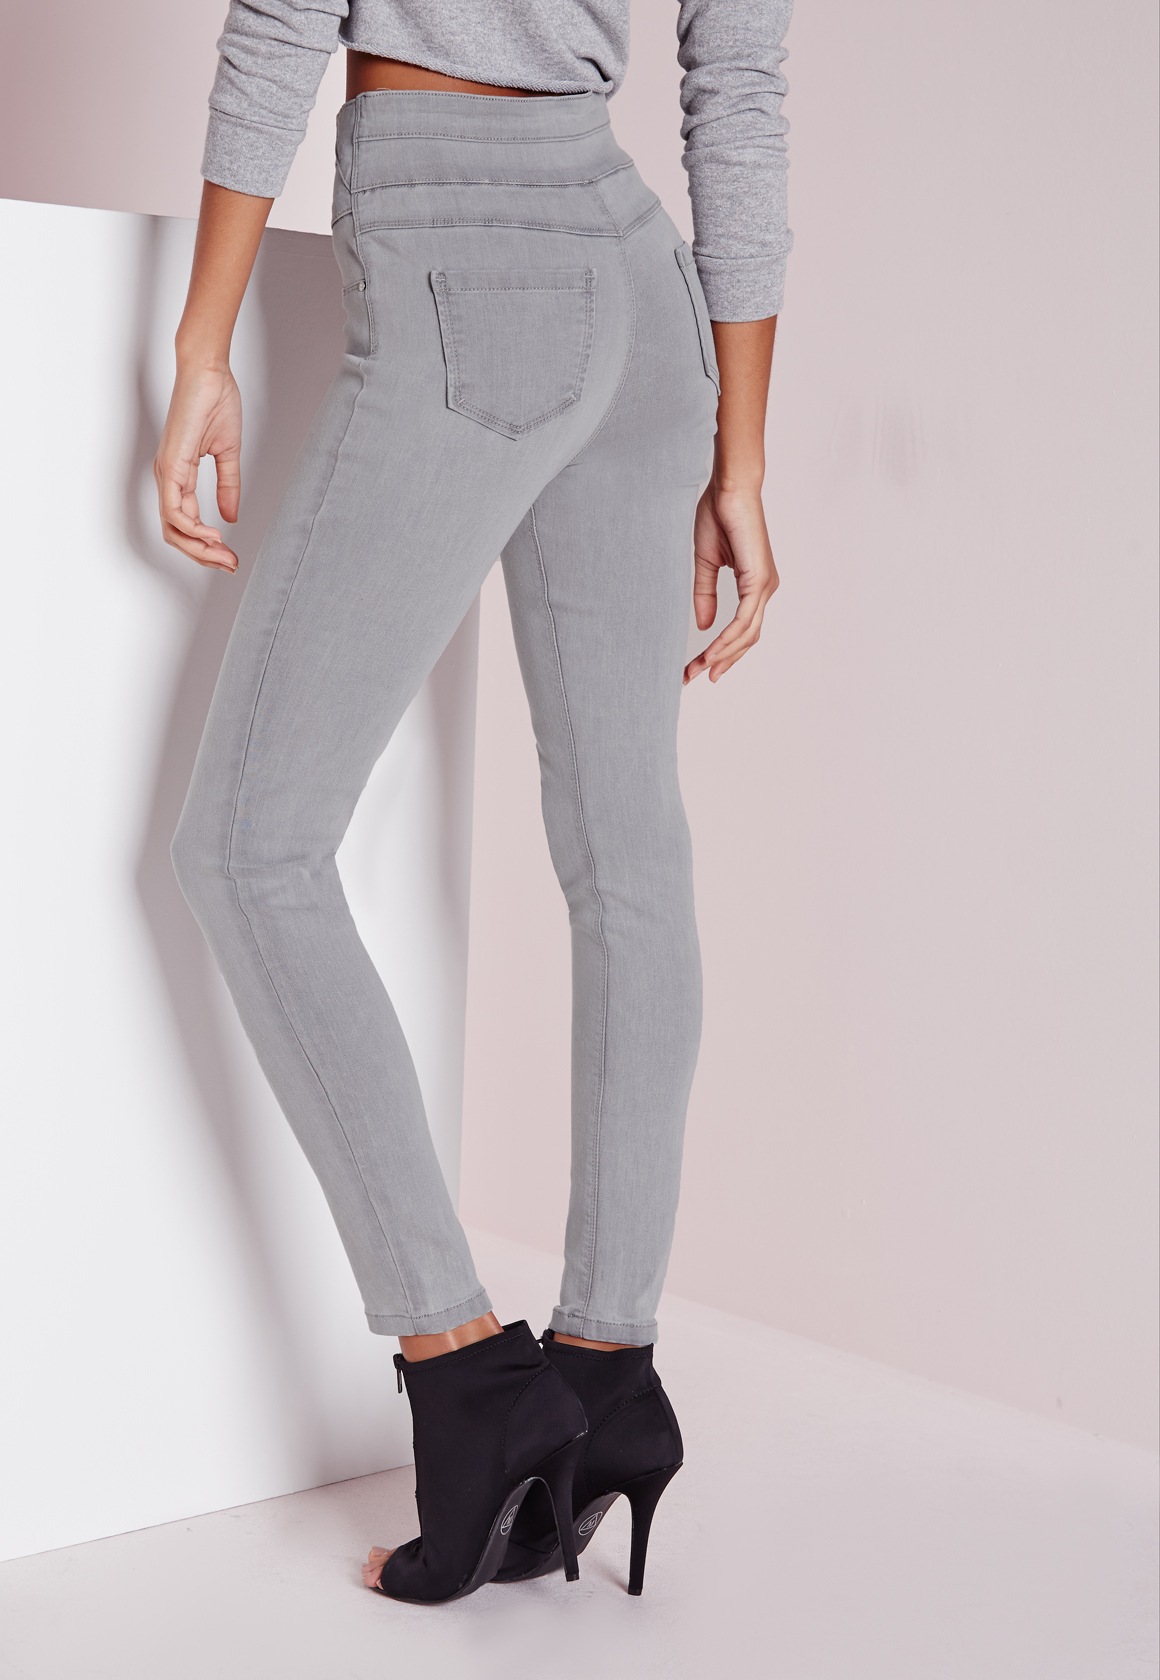 Missguided Sinner High Waisted Skinny Jeans Light Grey in Gray | Lyst